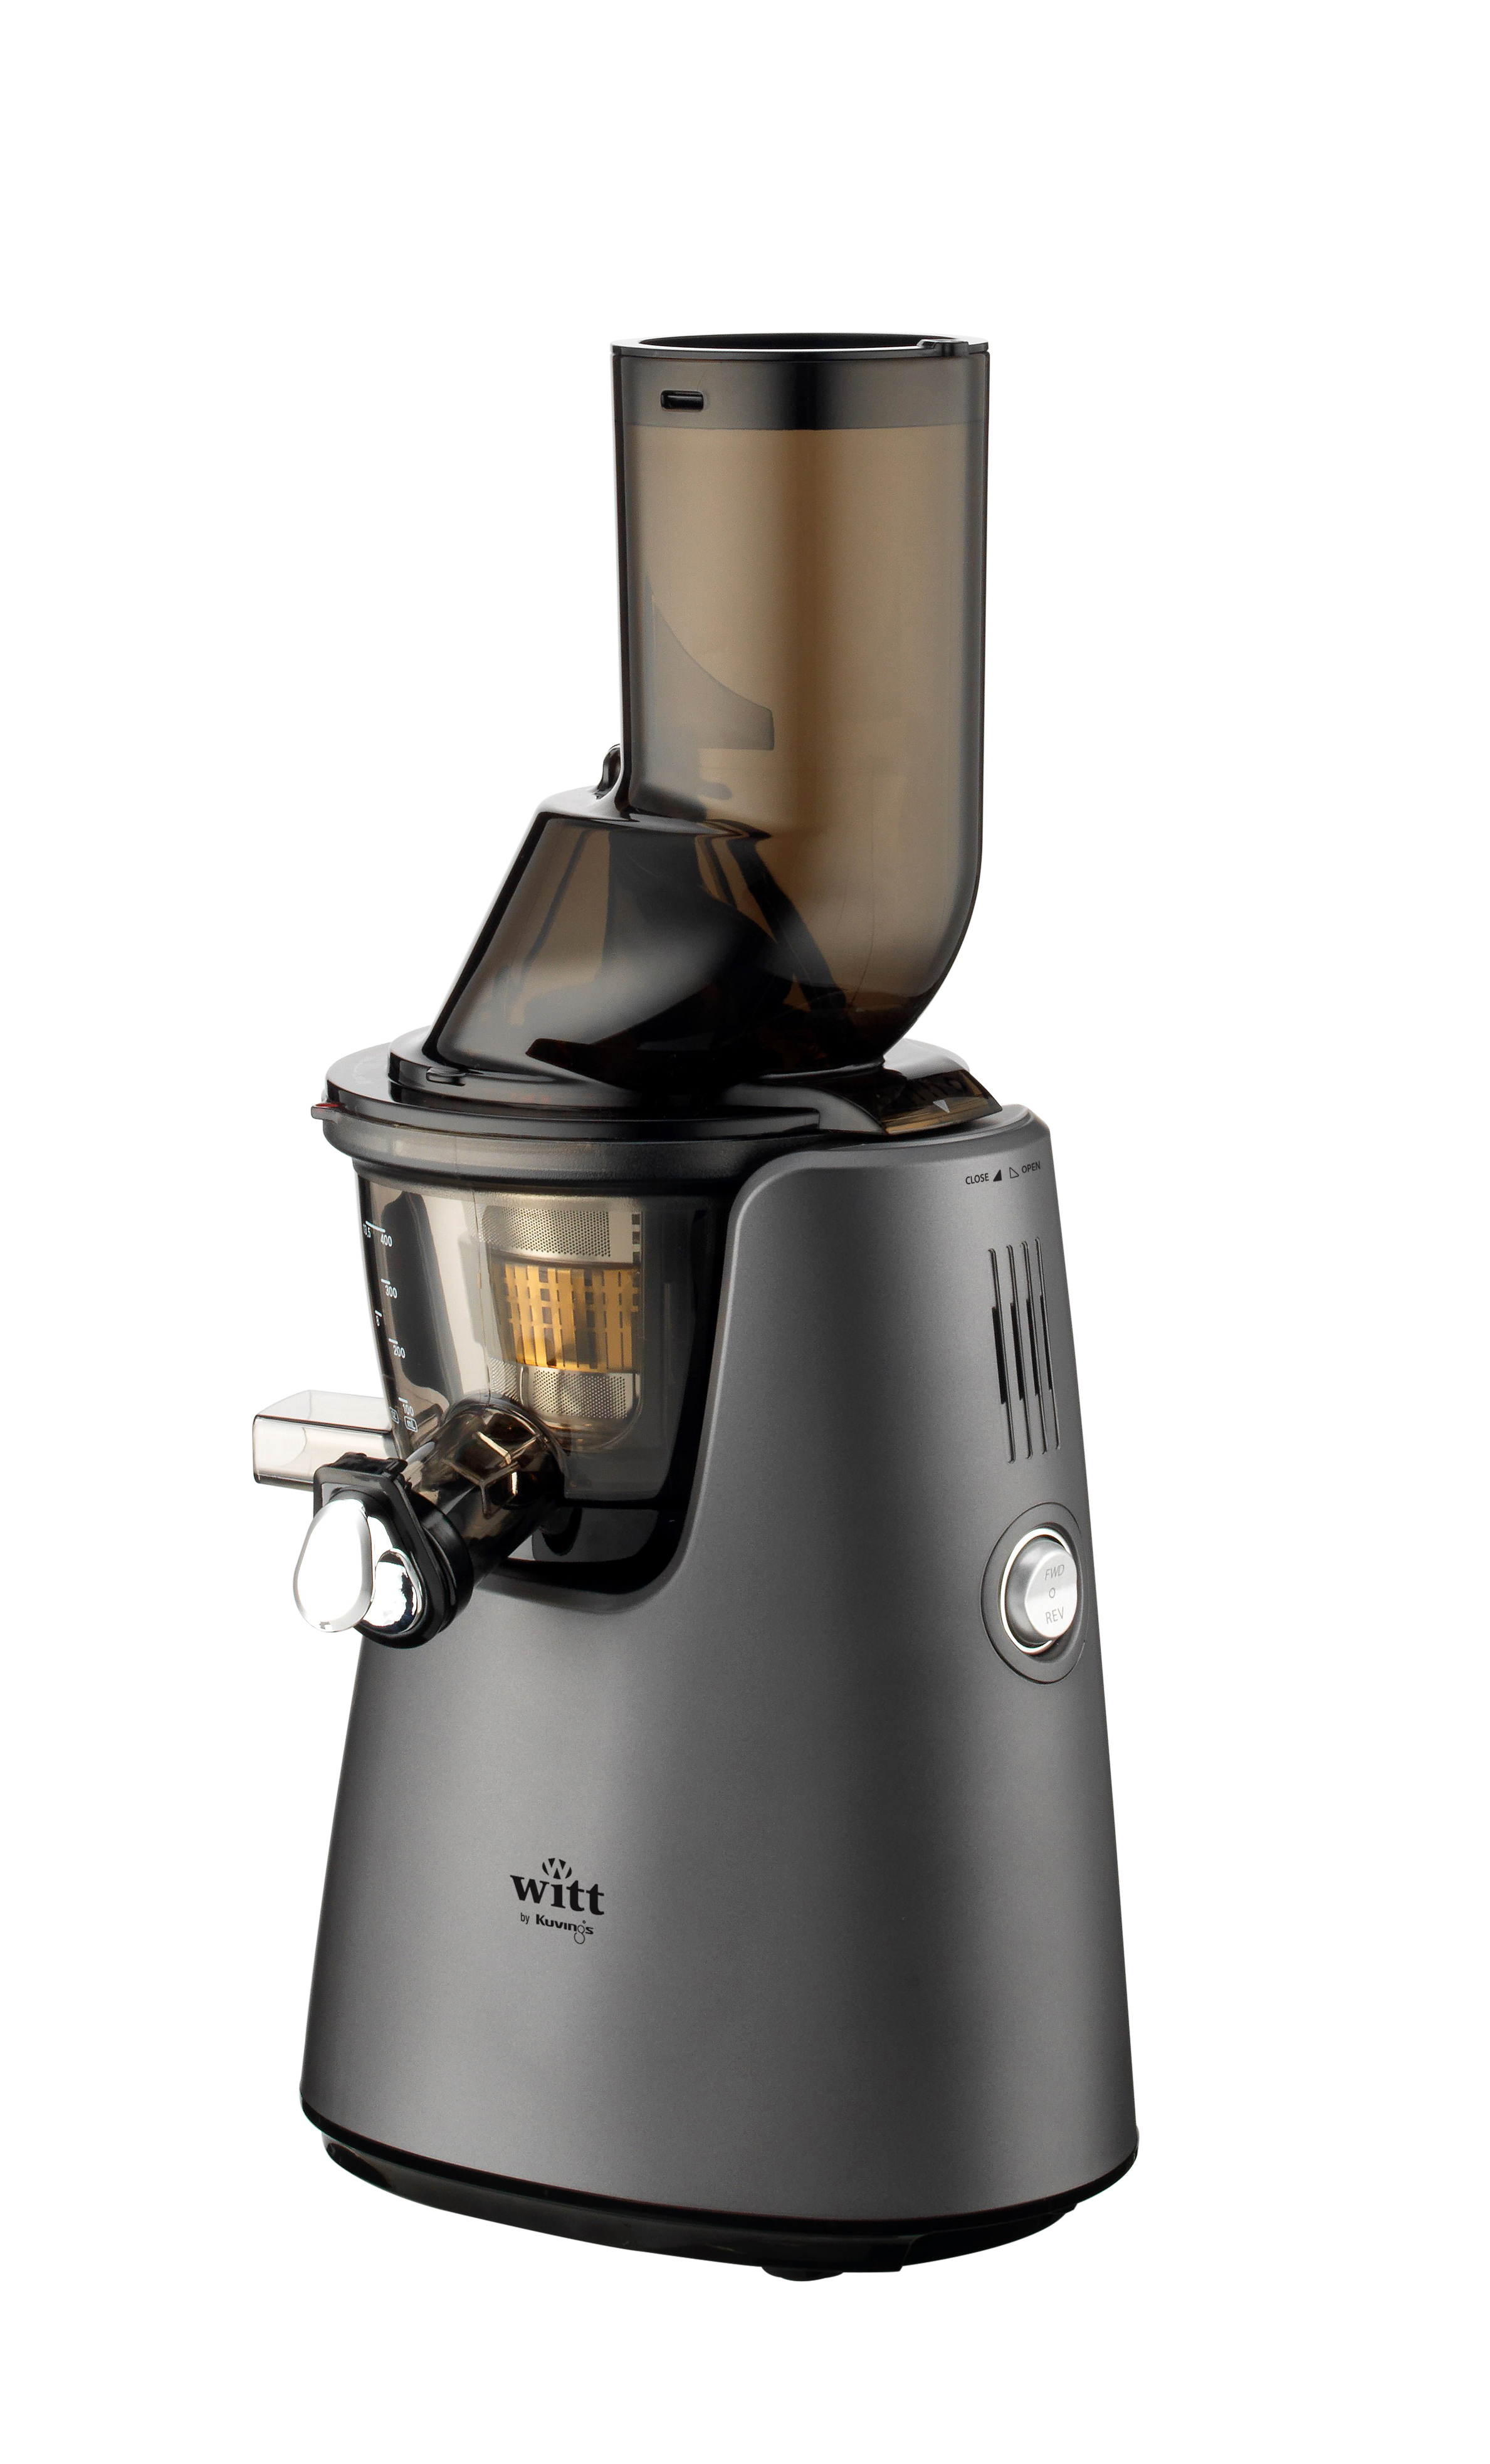 Witt by Kuvings C9640 slowjuicer